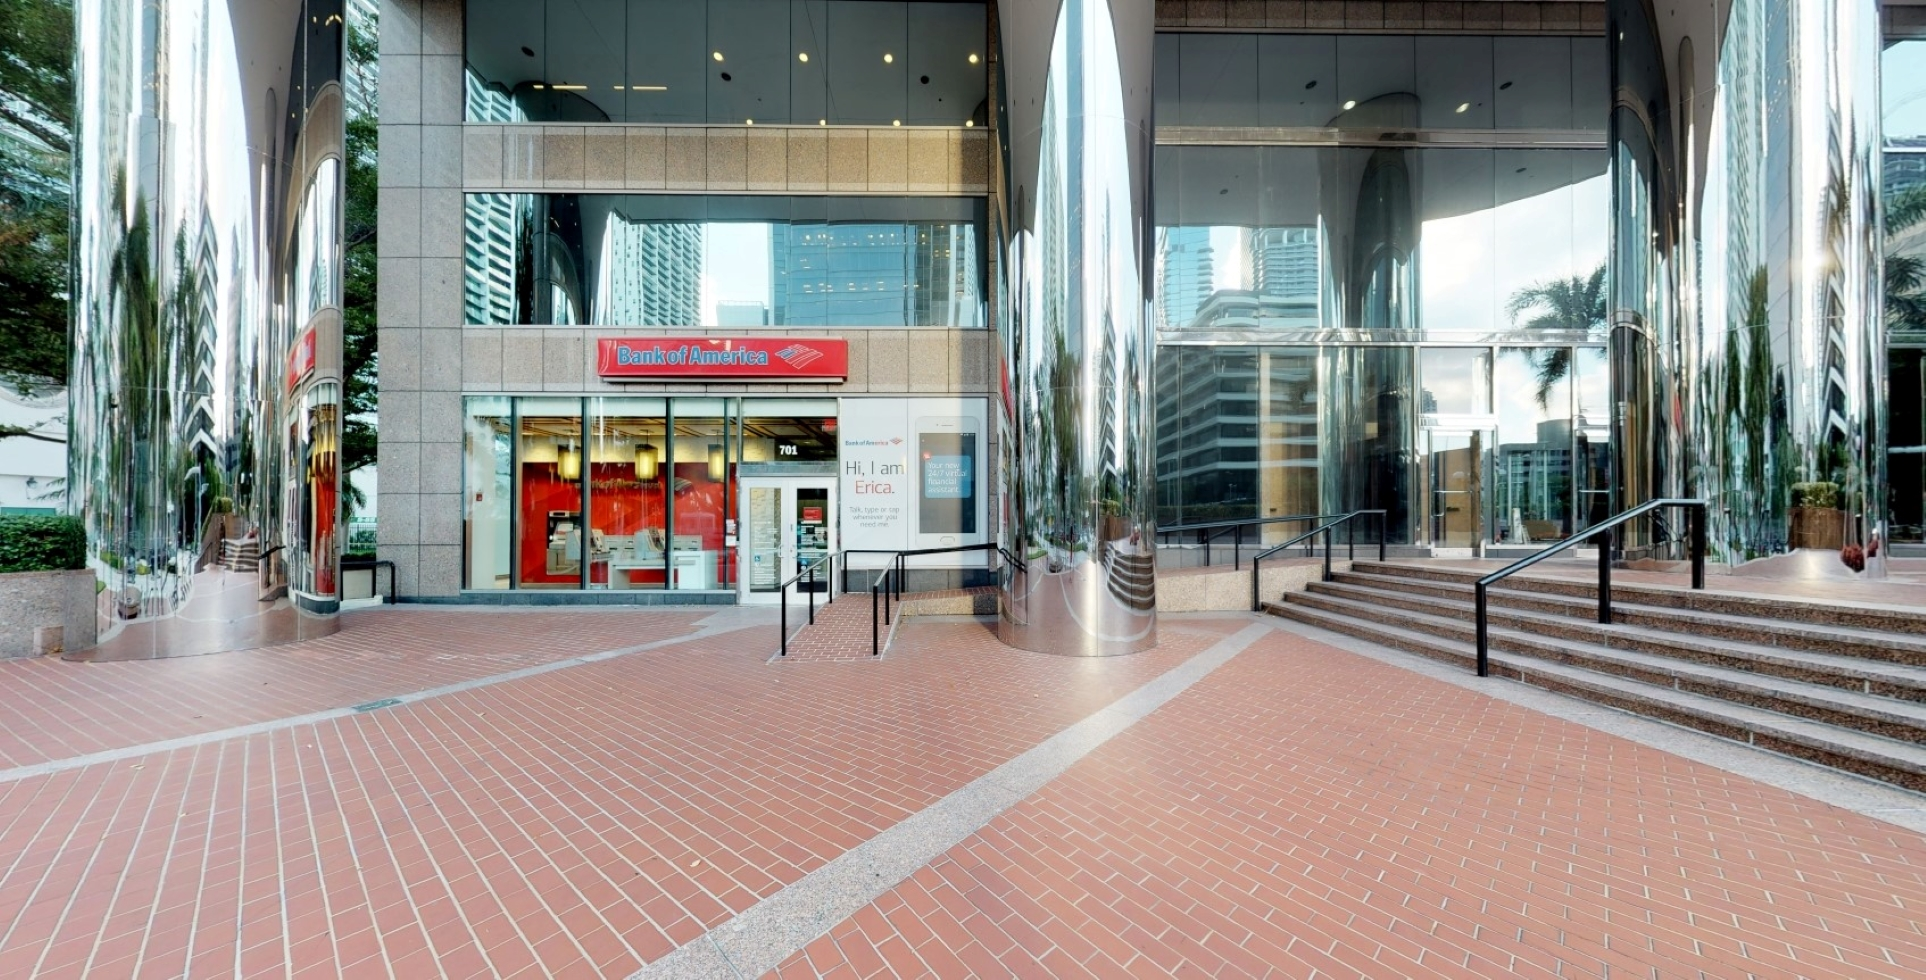 Bank of America financial center with walk-up ATM   701 Brickell Ave, Miami, FL 33131